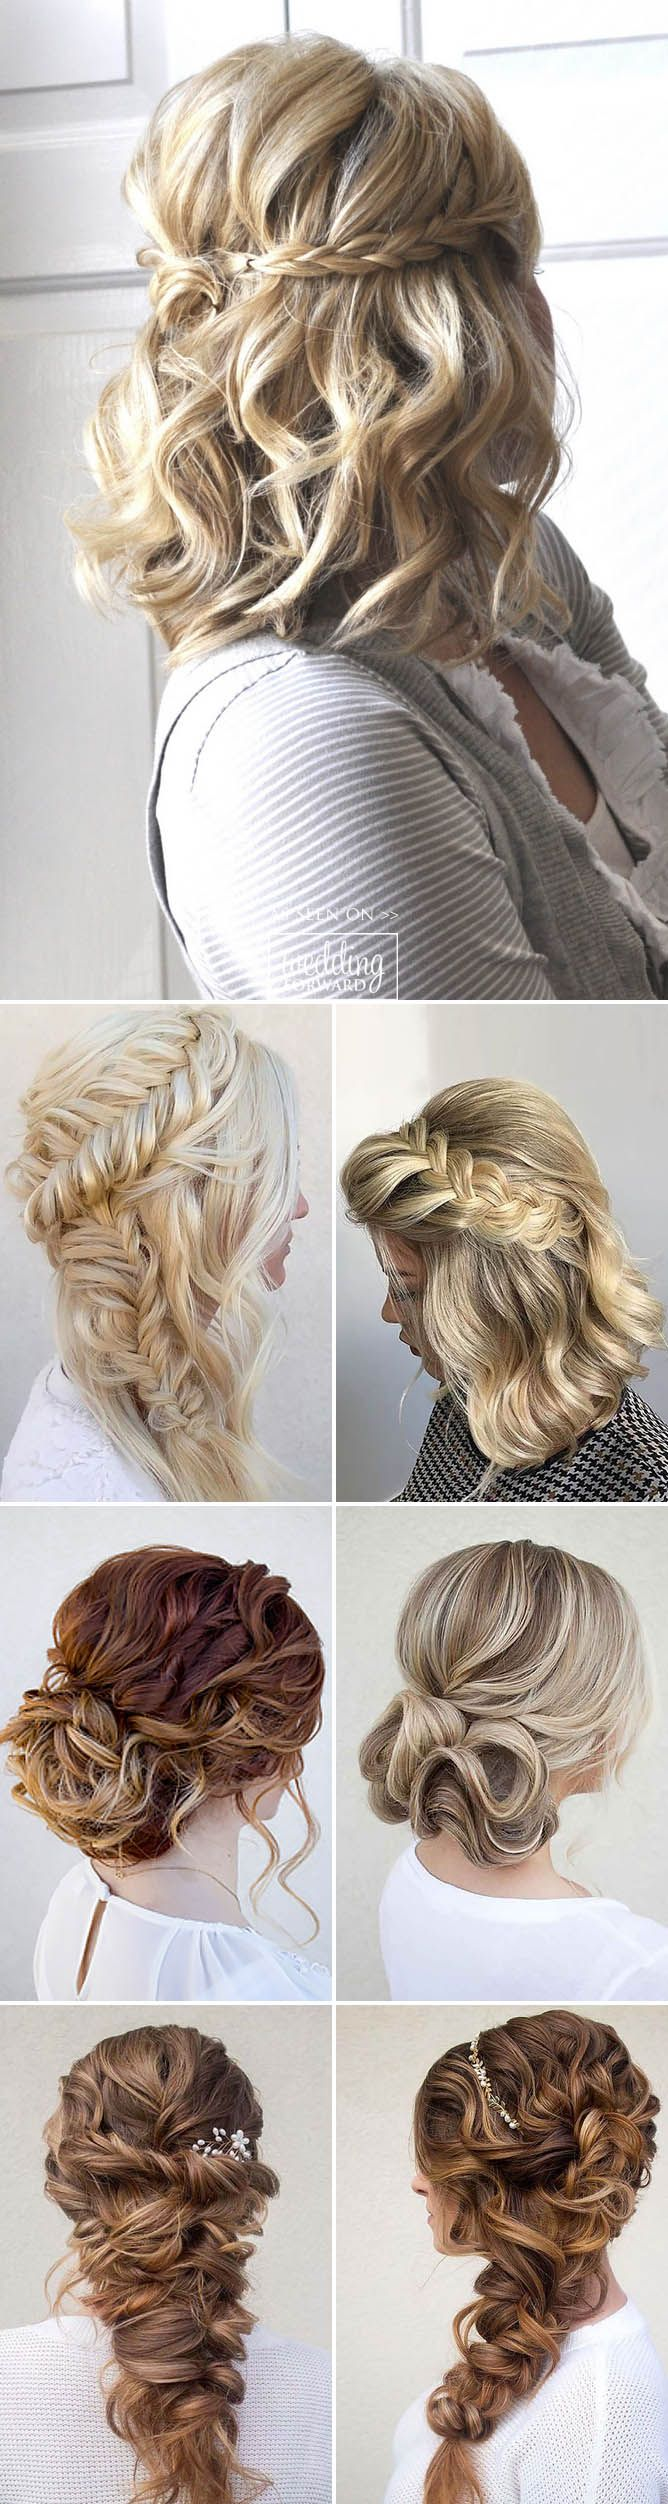 30 Hottest Bridesmaids Hairstyles For Short or Long Hair ❤ Thinking about brid...